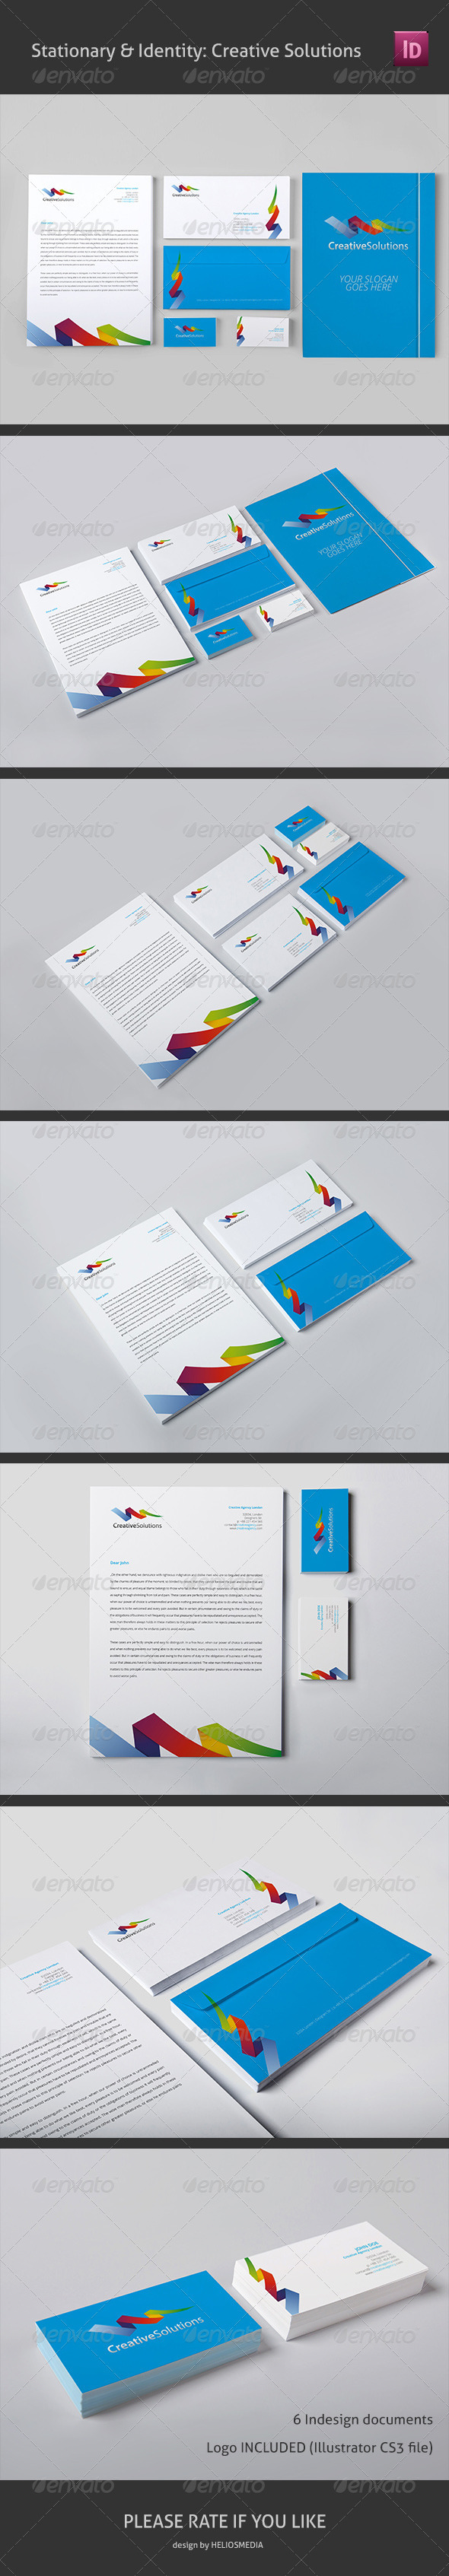 Stationary & Identity: Creative Solutions - Stationery Print Templates